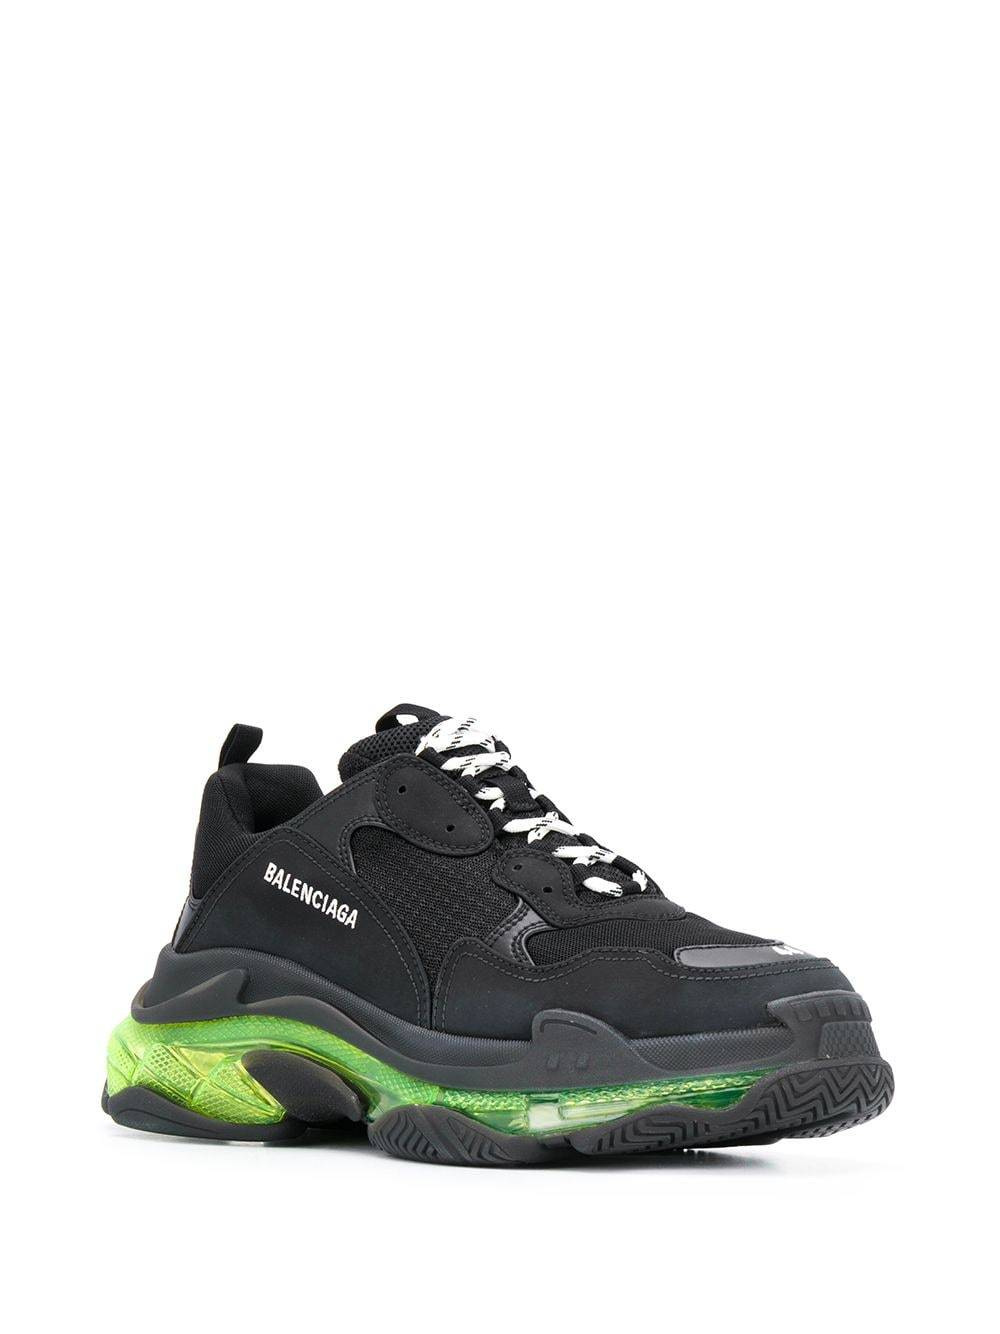 BALENCIAGA Triple S Clearsole Sneaker Black/Fluorescent Yellow